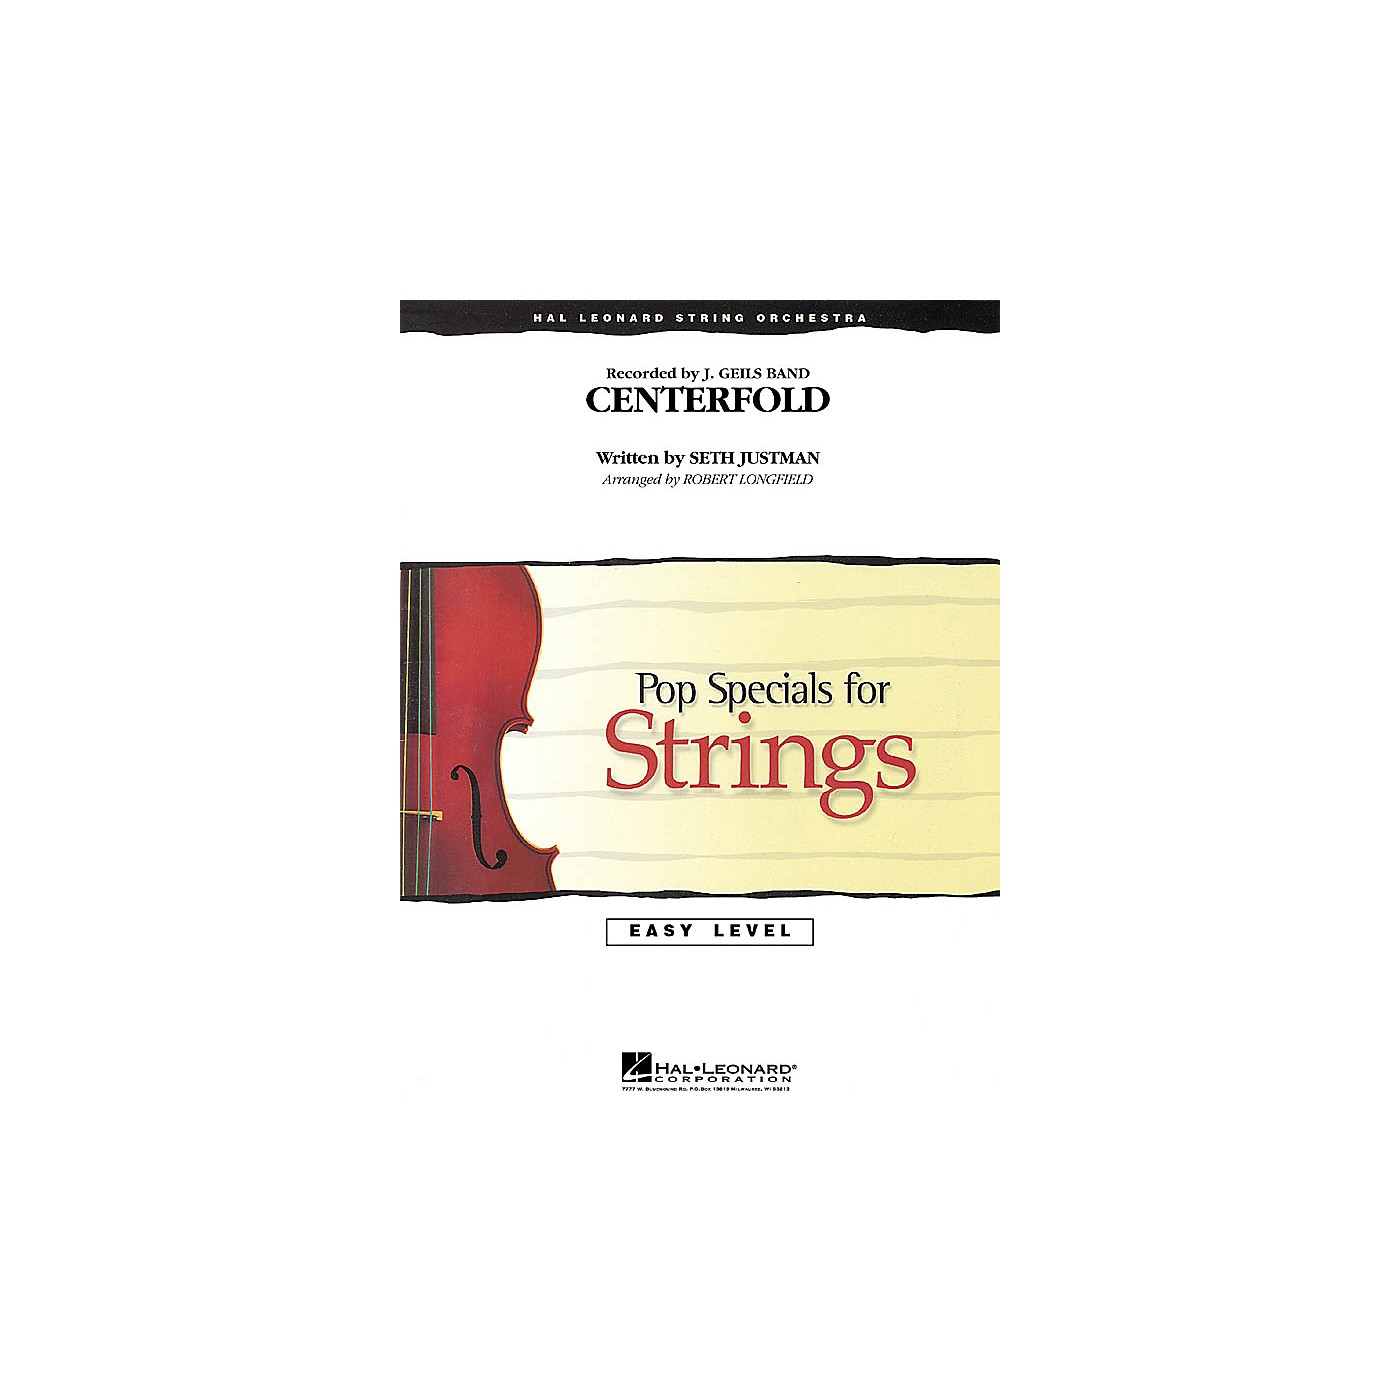 Hal Leonard Centerfold Easy Pop Specials For Strings Series by J. Geils Band Arranged by Robert Longfield thumbnail